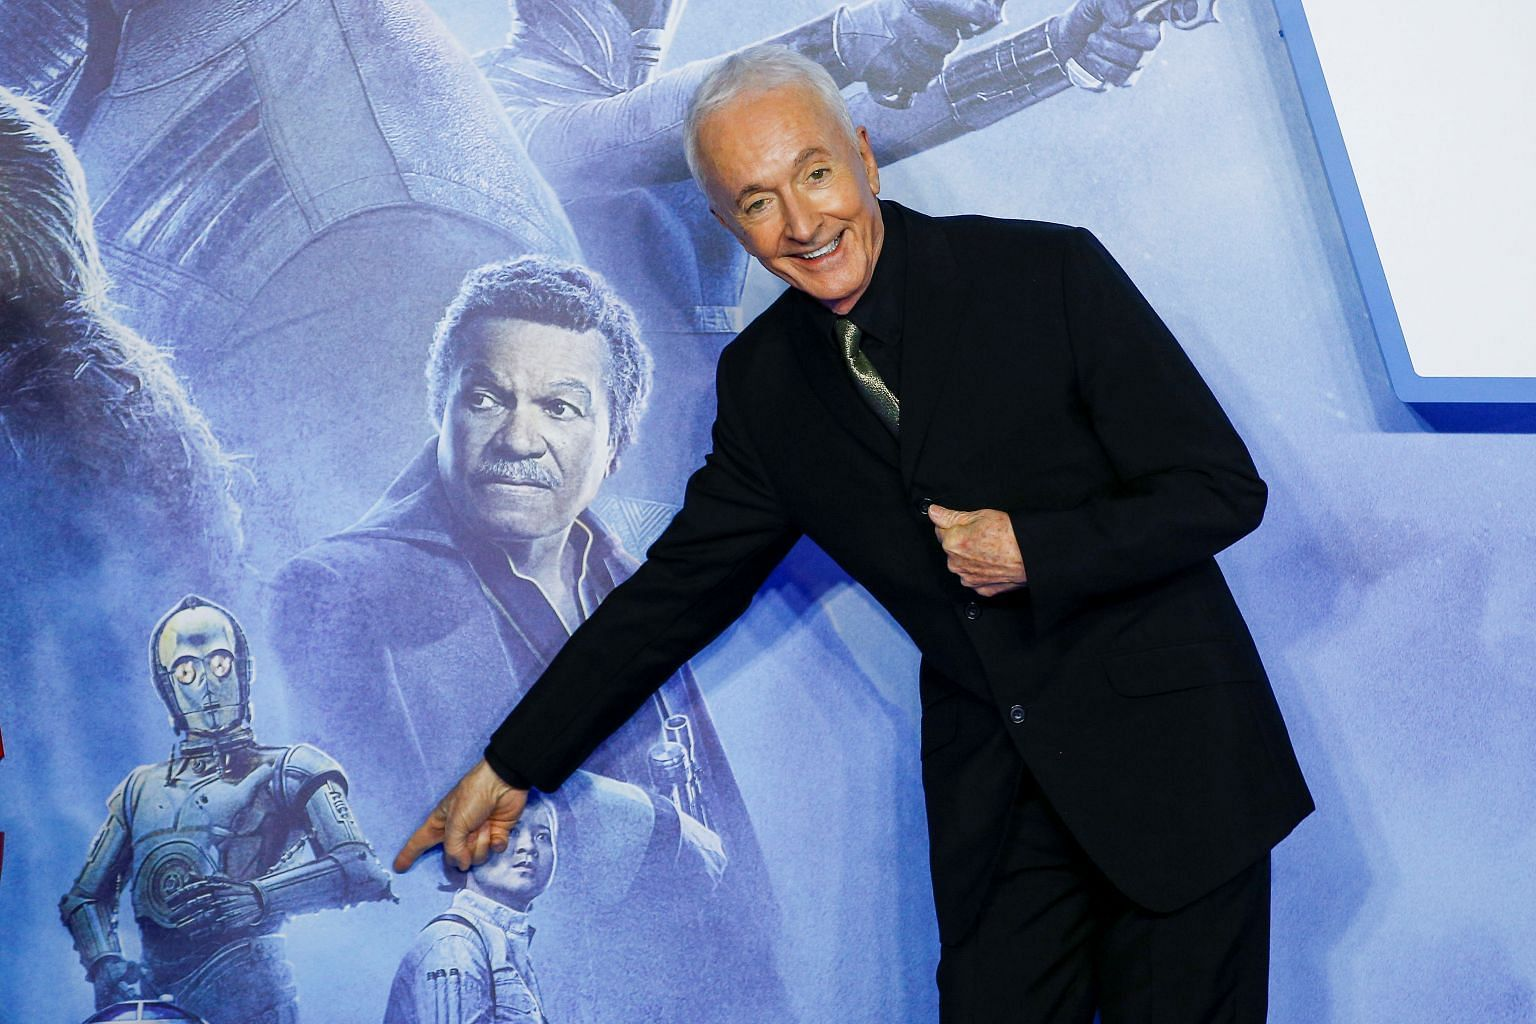 Anthony Daniels has written a memoir, I Am C-3PO: The Inside Story, which was released in late October.